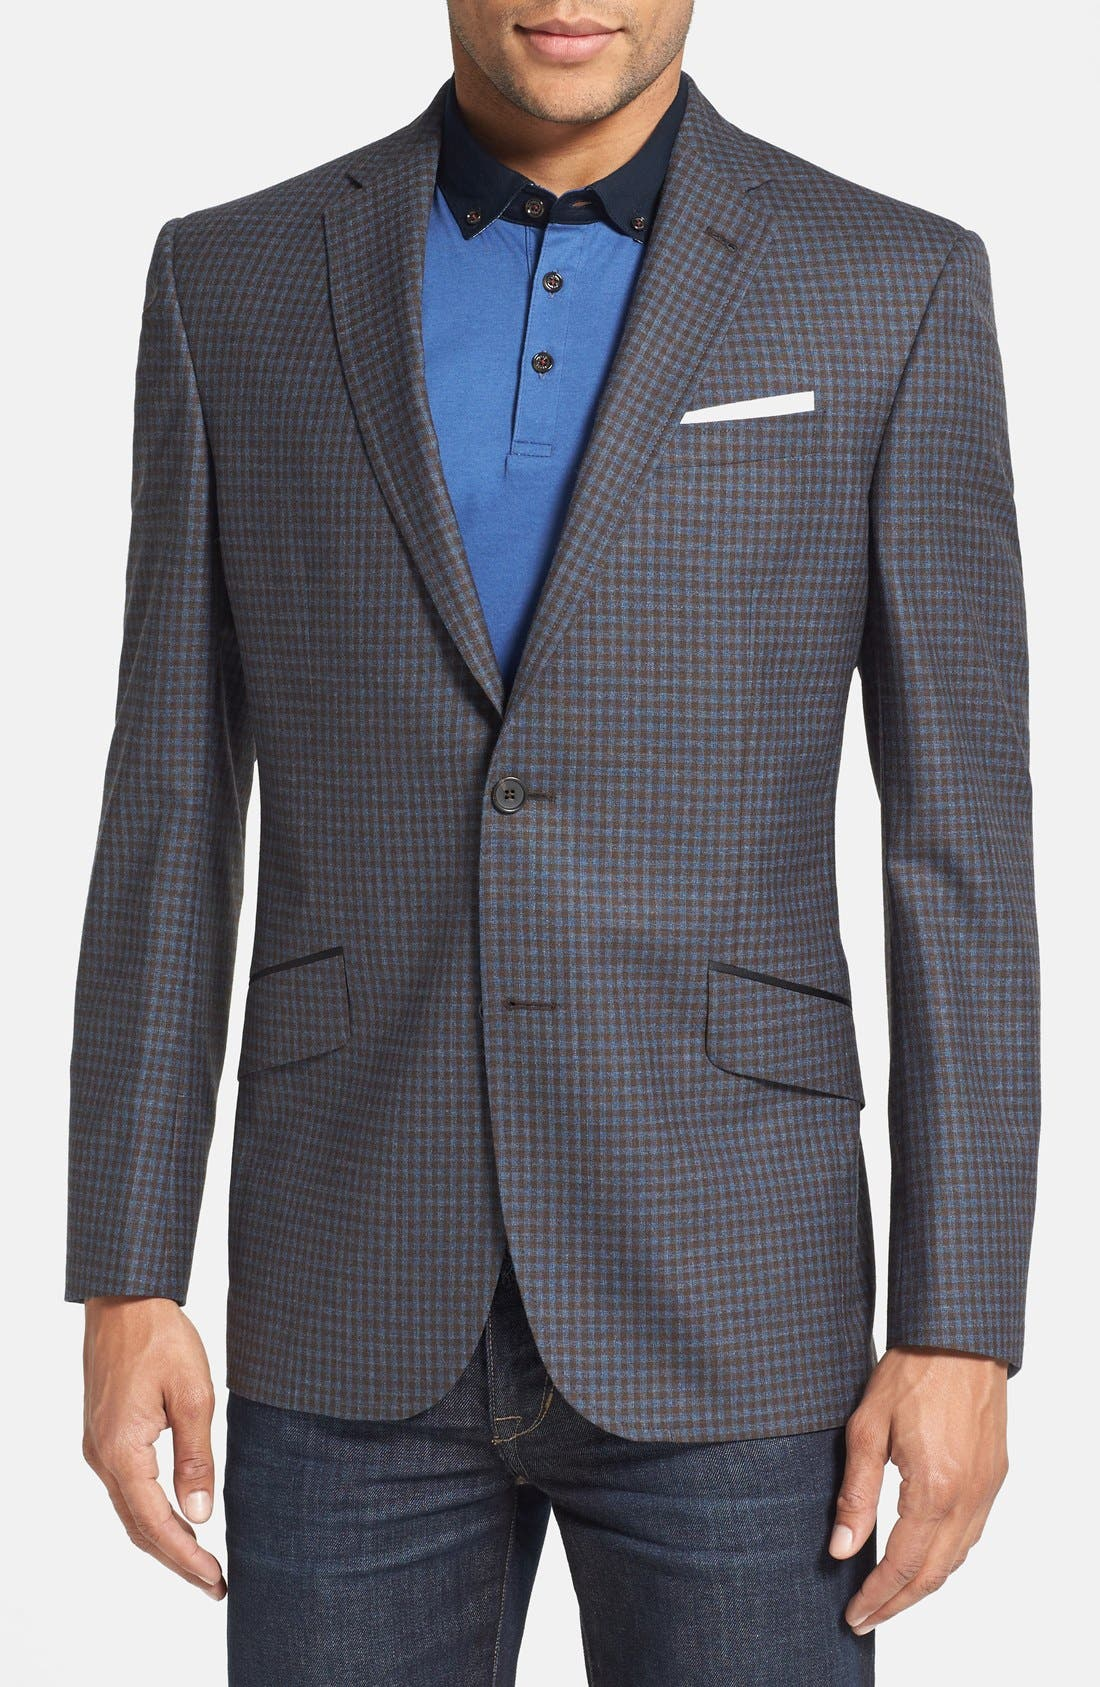 Alternate Image 1 Selected - Ted Baker London 'Jerry' Trim Fit Check Sport Coat (Online Only)